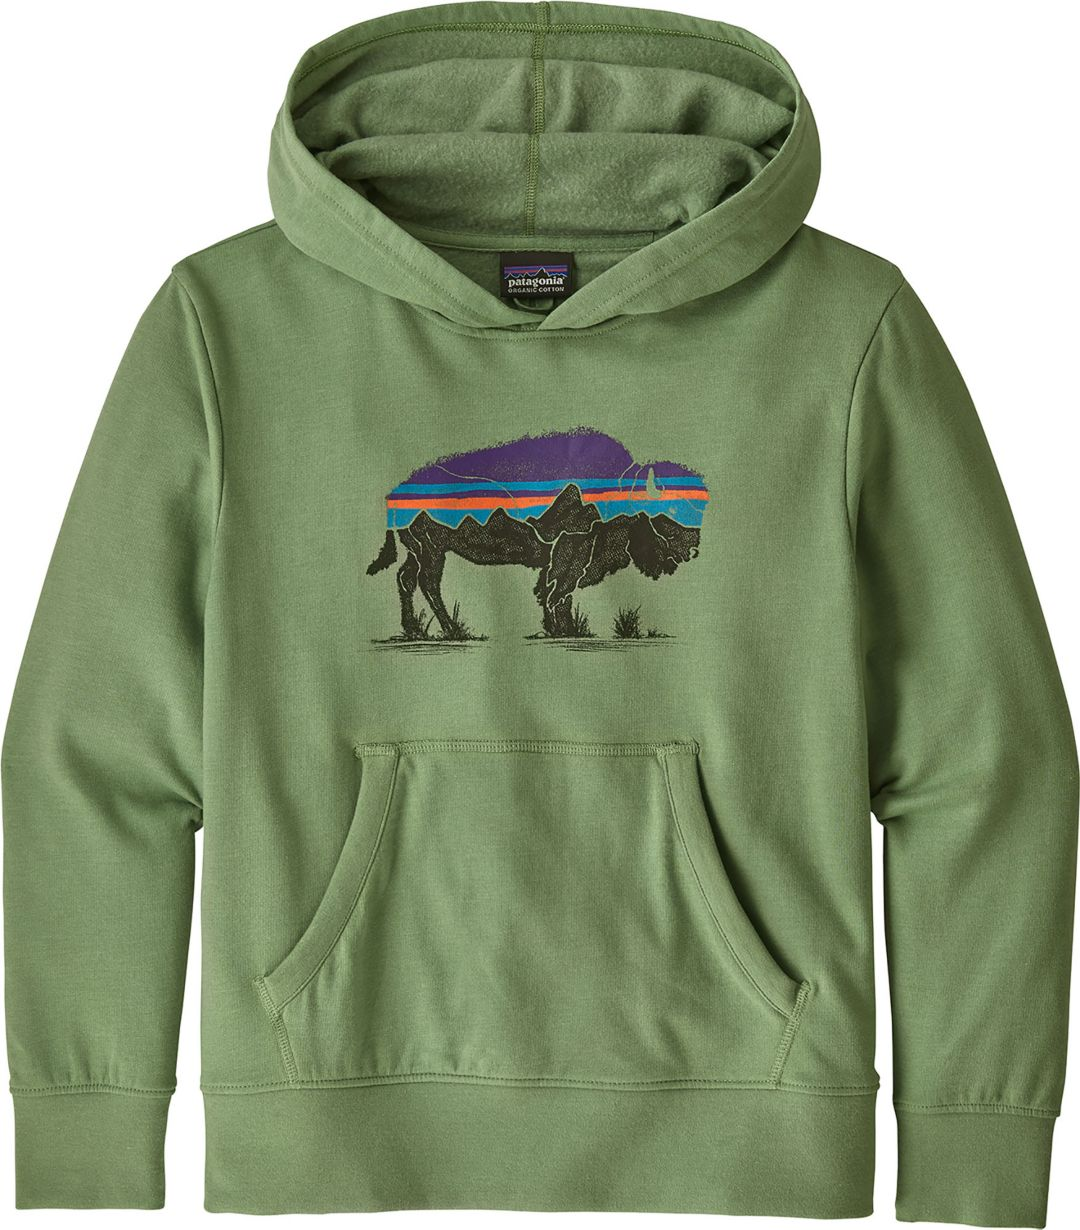 c9480d173 Patagonia Boys' Lightweight Graphic Hoodie | DICK'S Sporting Goods